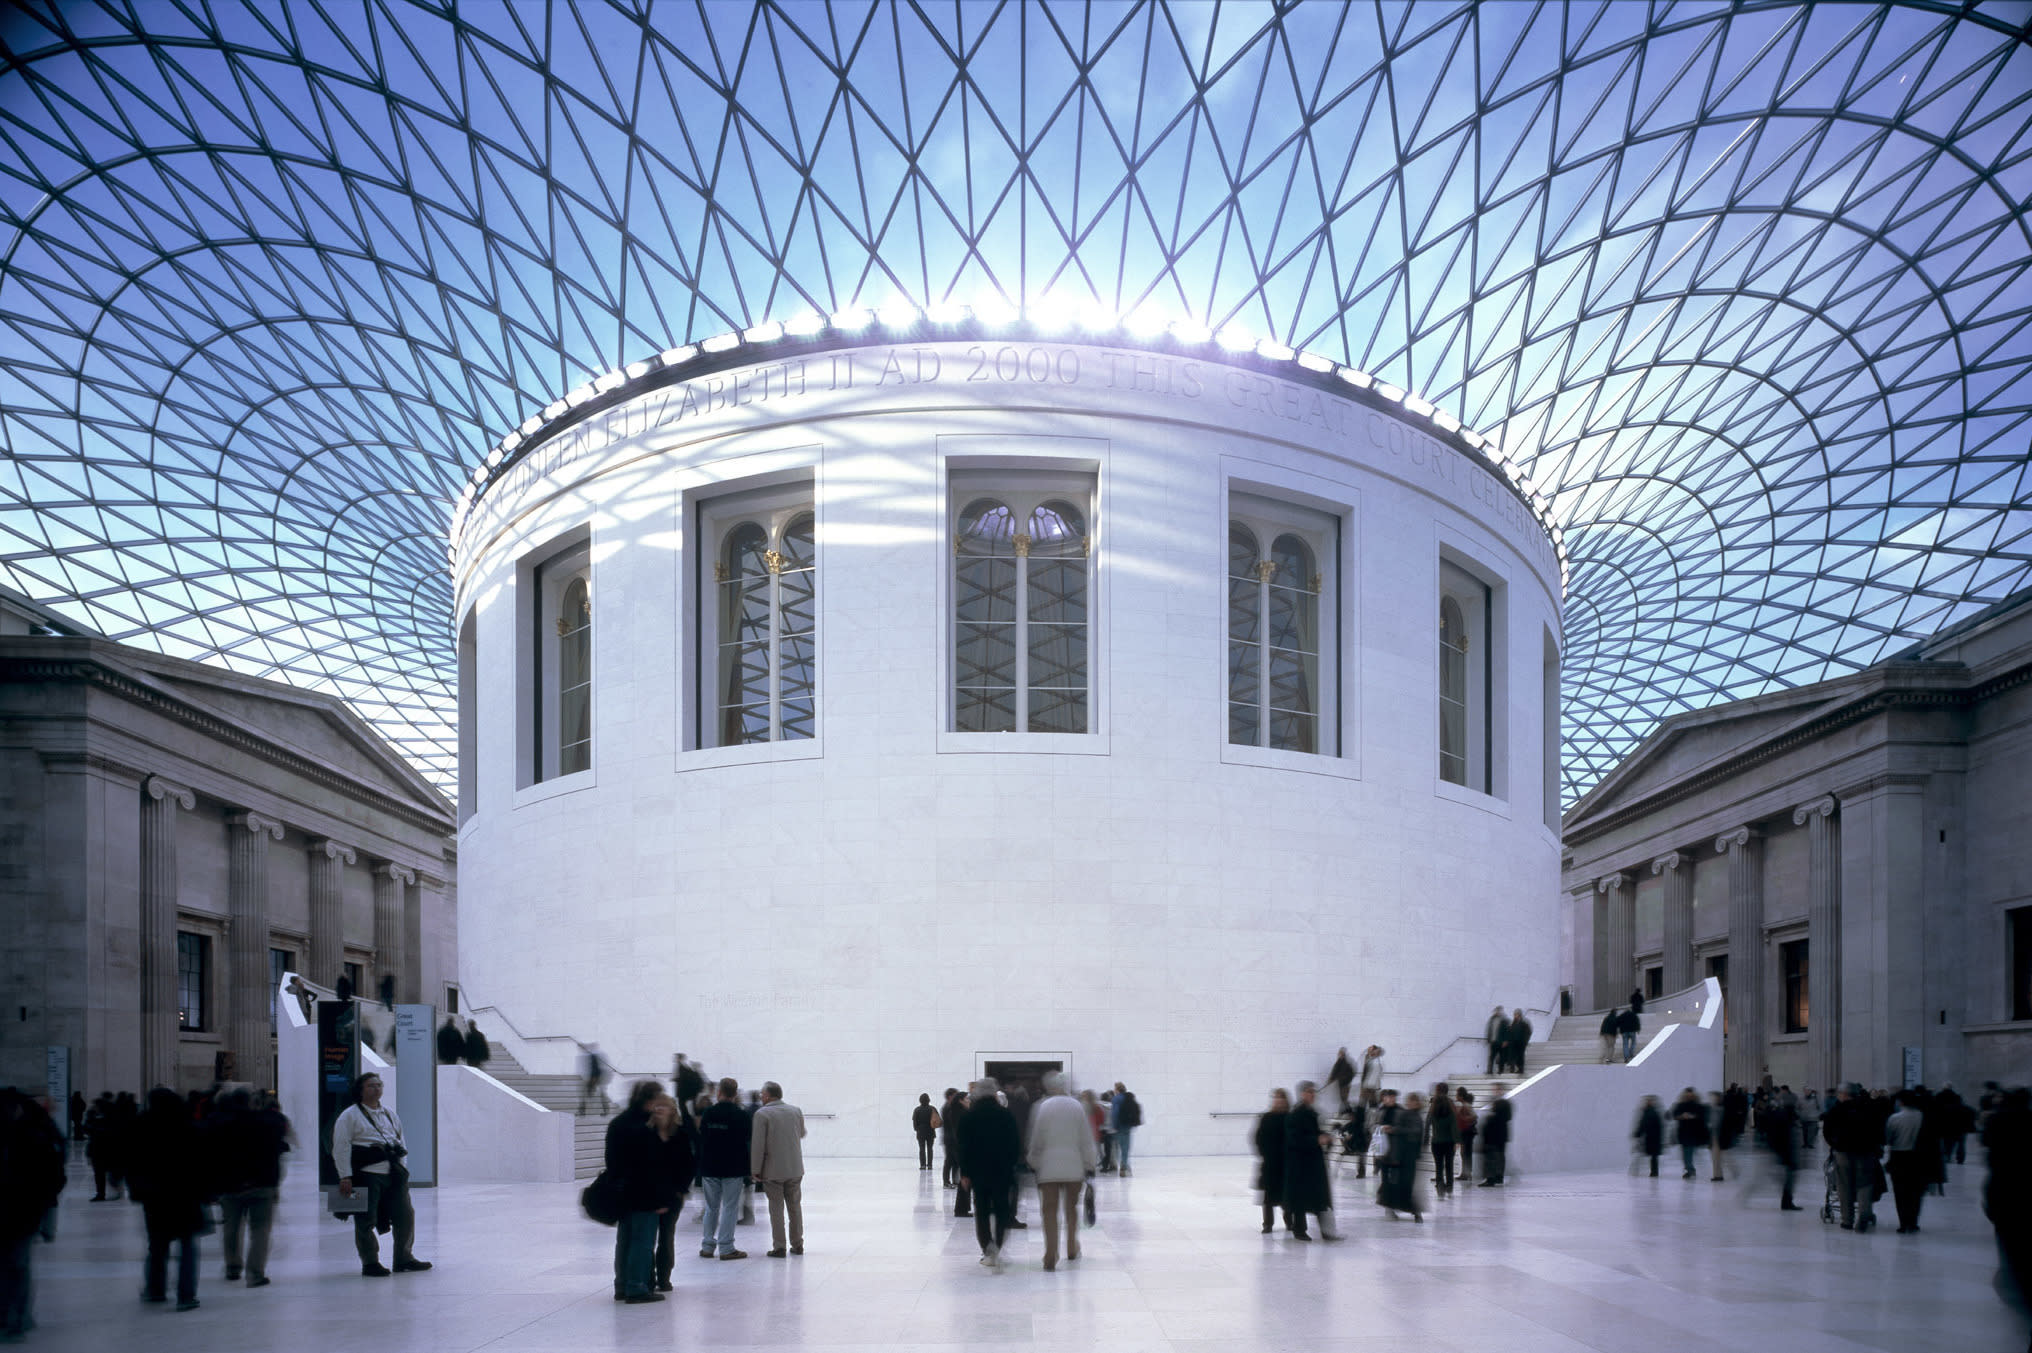 """<p>The <a href=""""http://www.britishmuseum.org/"""" target=""""_blank"""">British Museum</a> was founded in 1753 and was the first national public museum in the world. The museum is home to a host of interesting exhibits from countries all over the world, including the iconic Rosetta Stone and the Parthenon Sculptures among many others.</p>"""